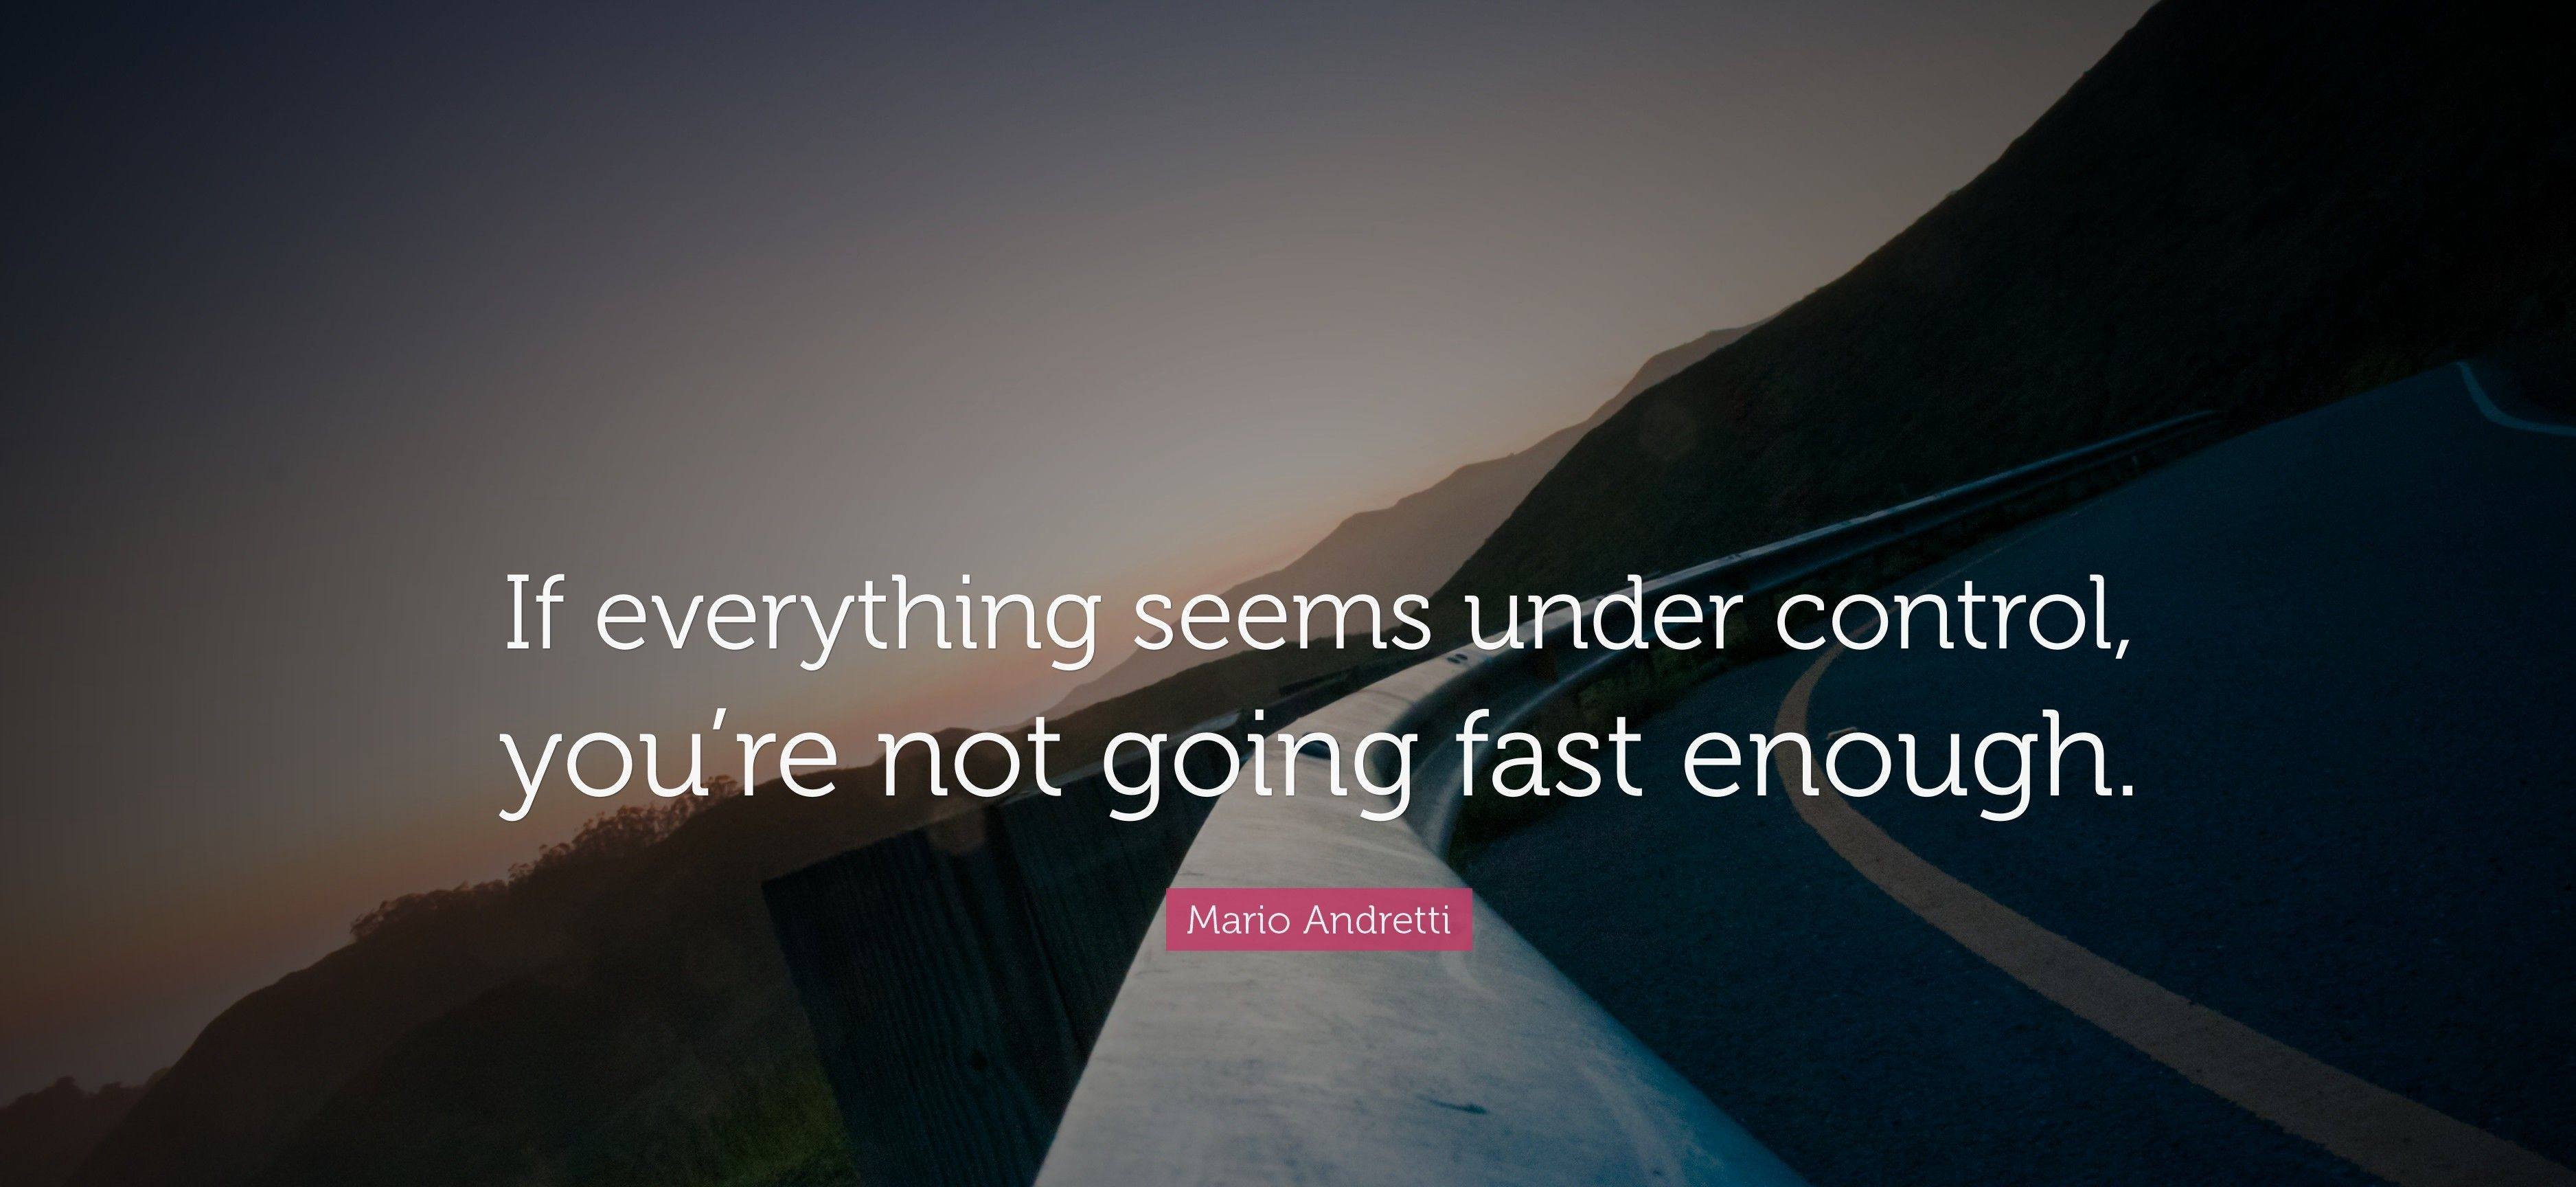 21296-Mario-Andretti-Quote-If-everything-seems-under-control-you-re-not~2.jpg